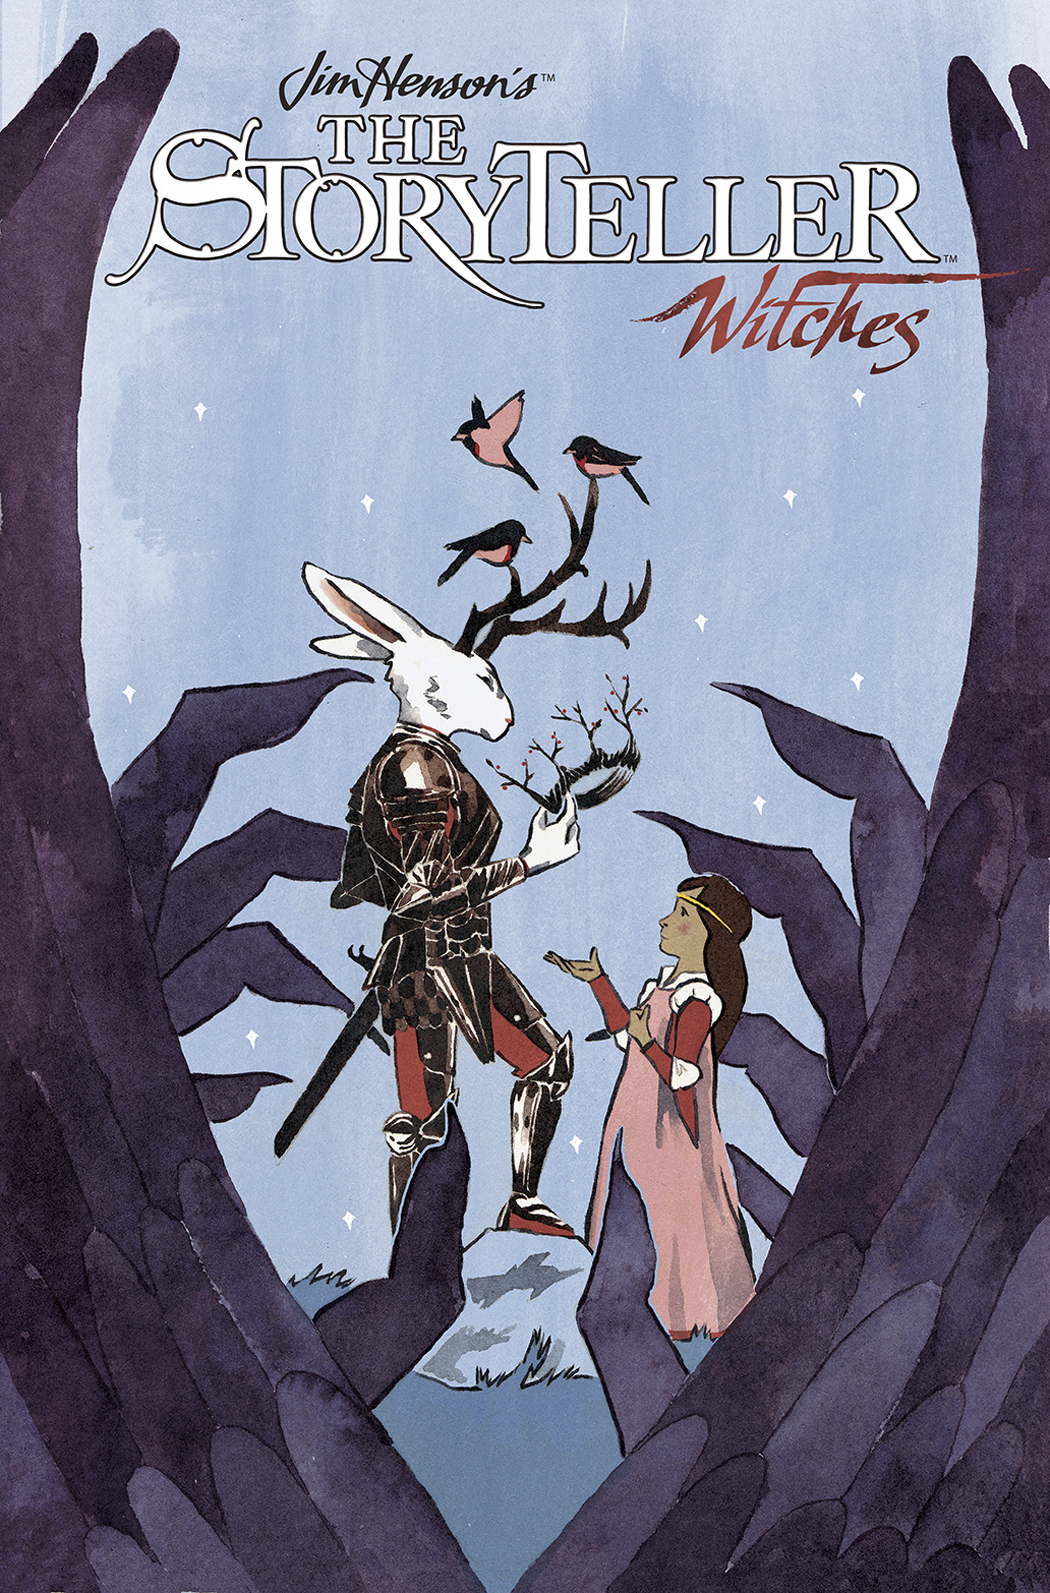 JIM HENSONS STORYTELLER WITCHES #1